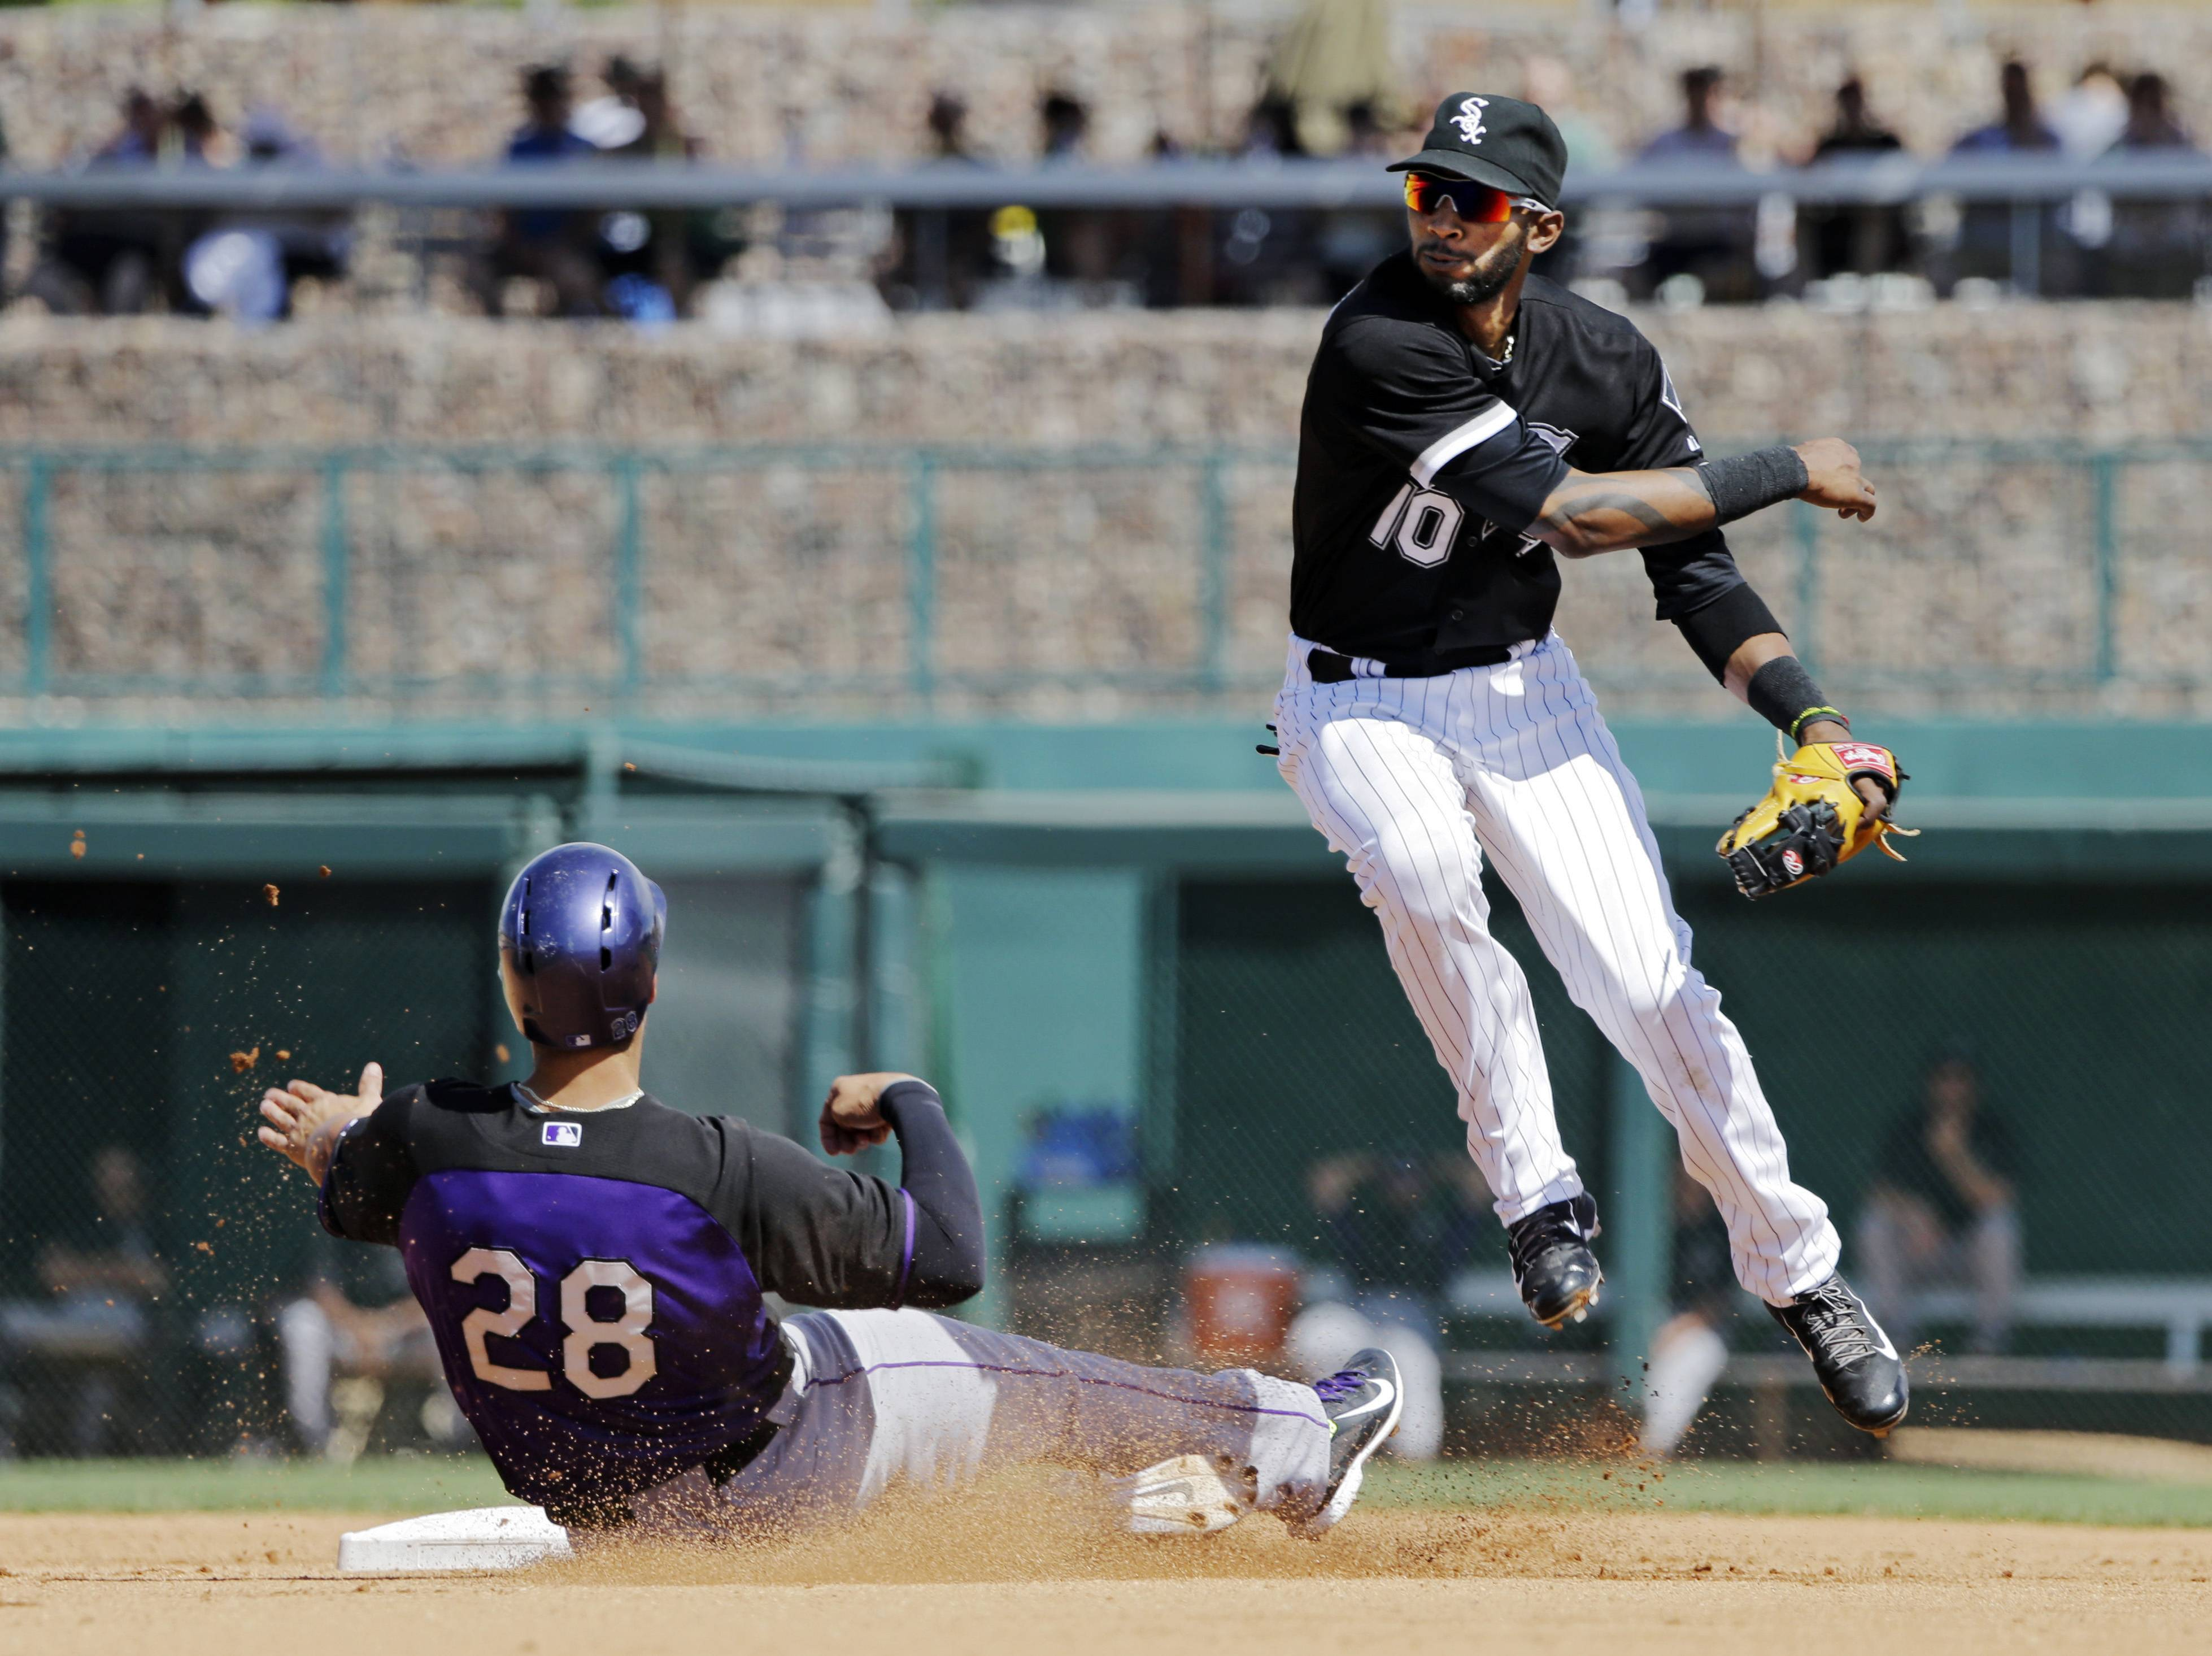 Chicago White Sox shortstop Alexei Ramirez avoids the slide of Colorado Rockies' Nolan Arenado (28) after relaying to first to complete a double play on Justin Morneau in the fourth inning of a spring exhibition baseball game Tuesday, March 25, 2014, in Glendale, Ariz. (AP Photo/Mark Duncan)